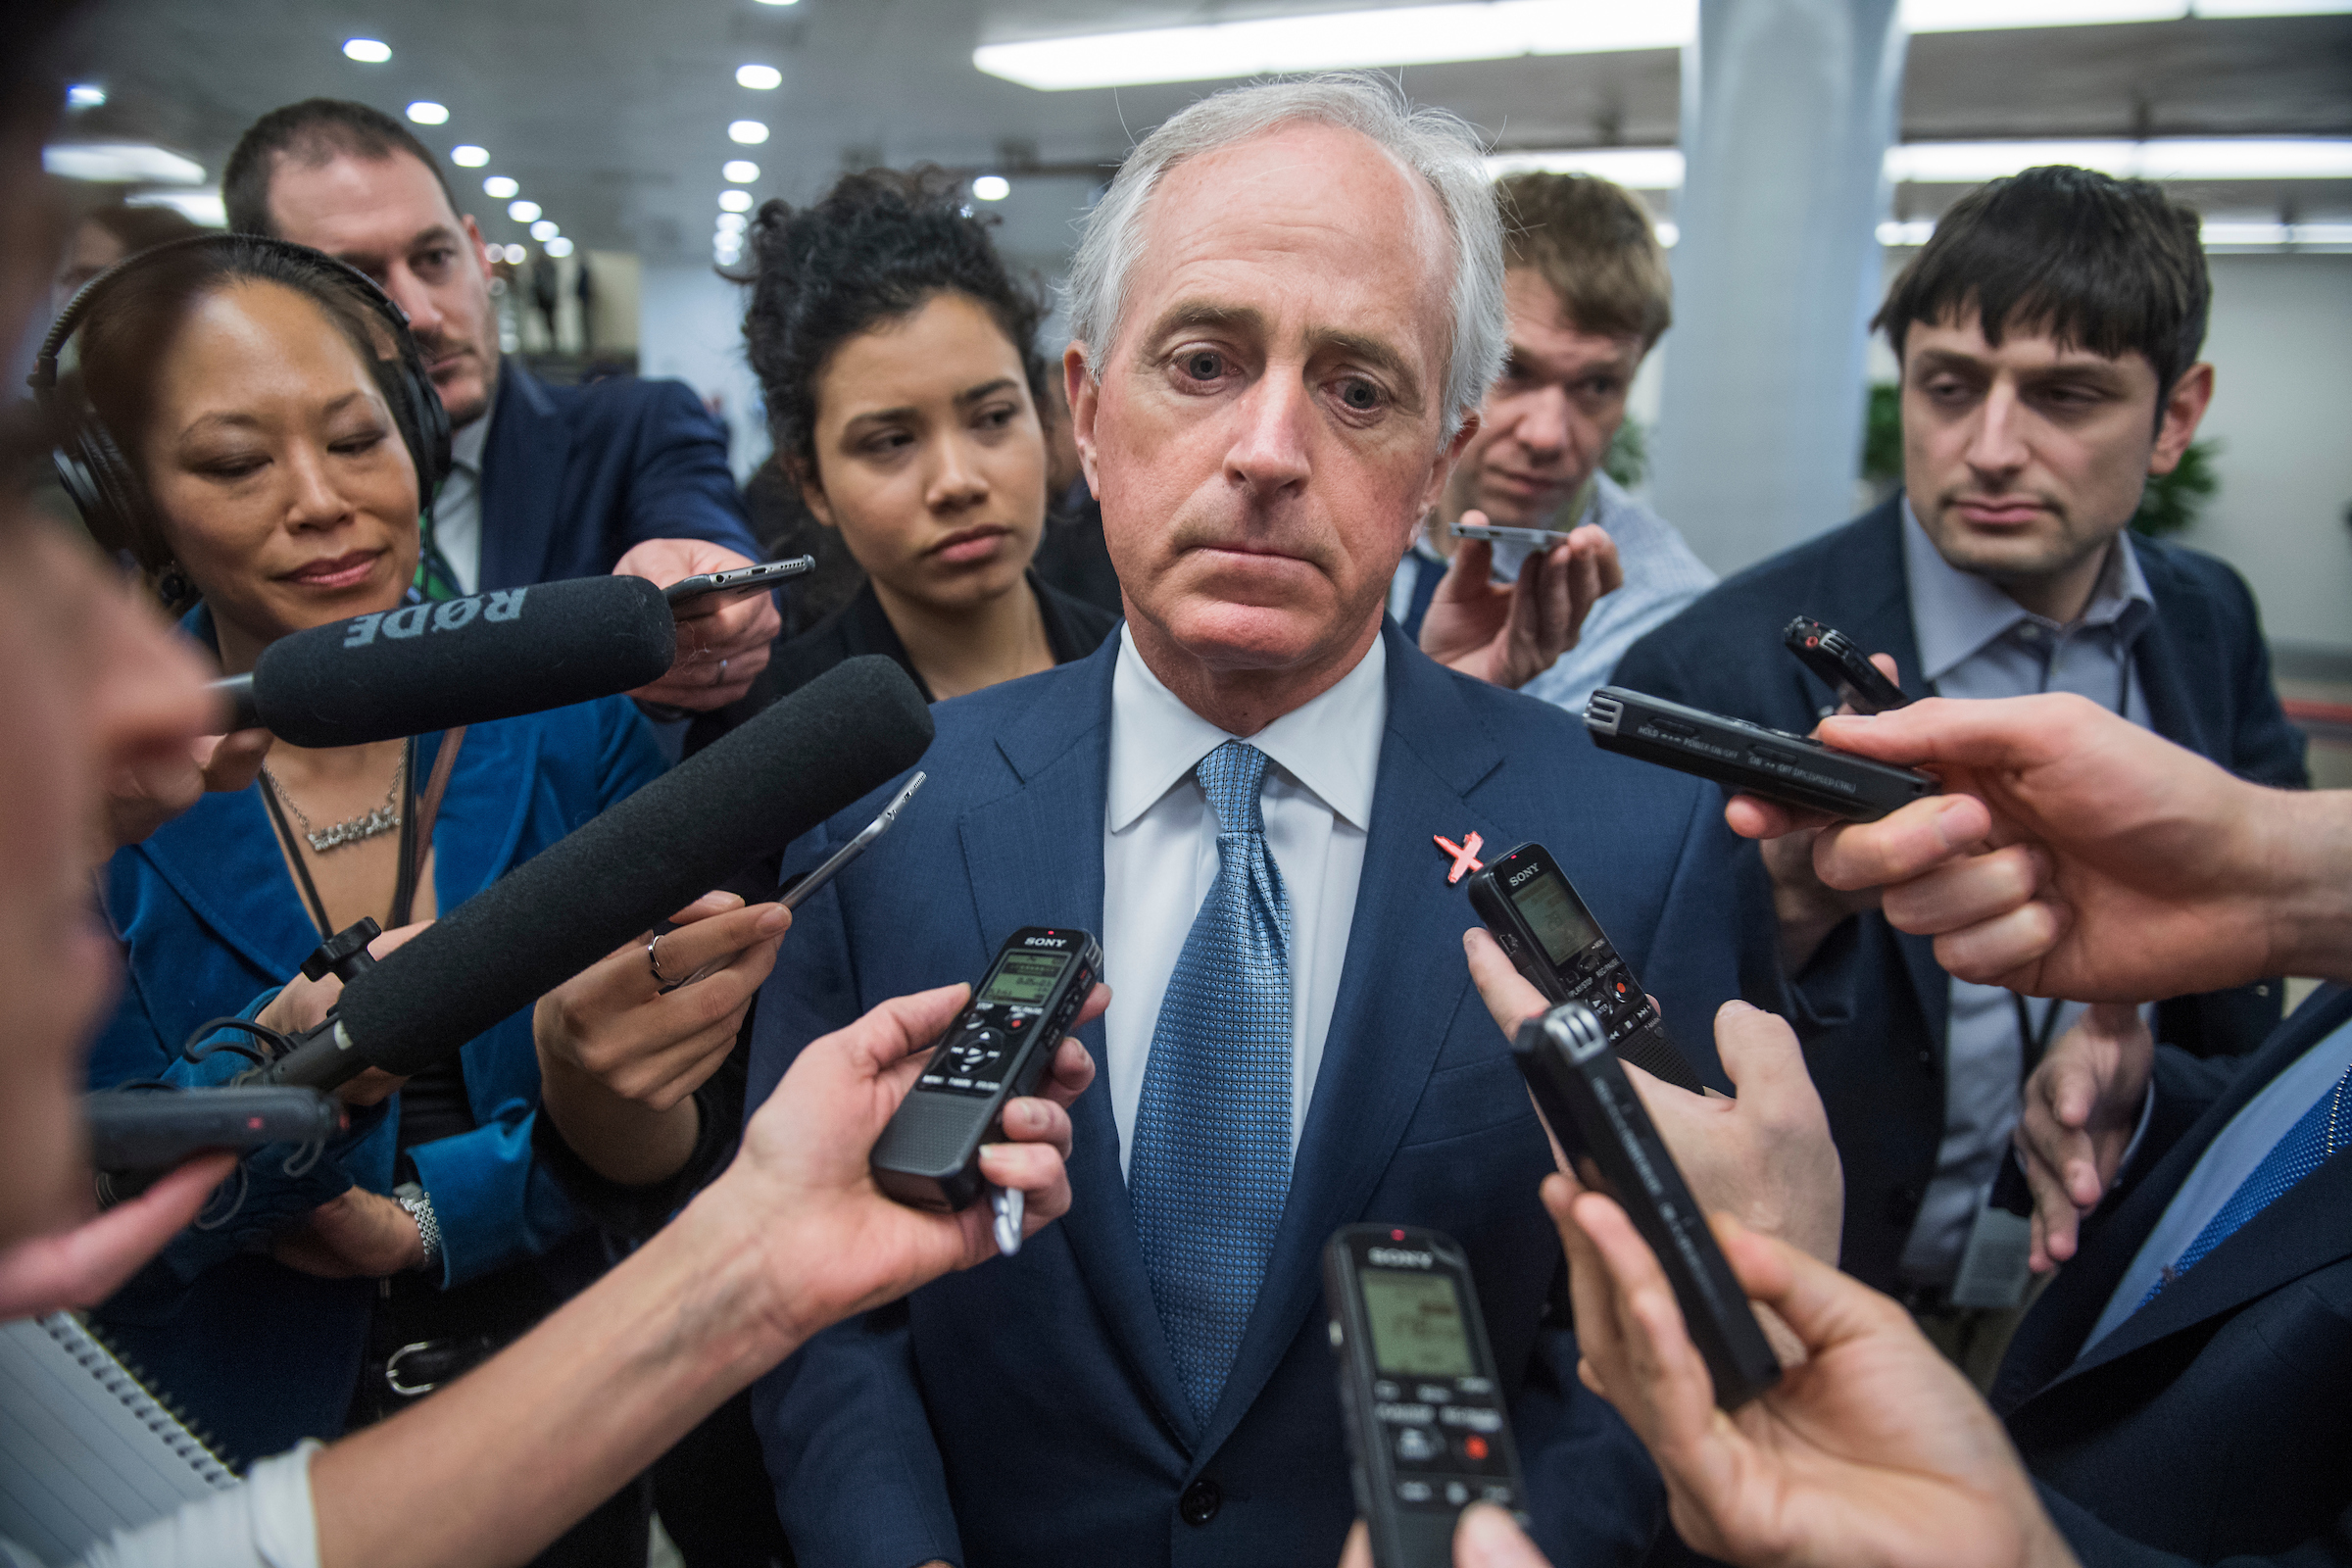 UNITED STATES - FEBRUARY 15: Sen. Bob Corker, R-Tenn., talks with reporters in the senate subway, February 15, 2017. (Photo By Tom Williams/CQ Roll Call)